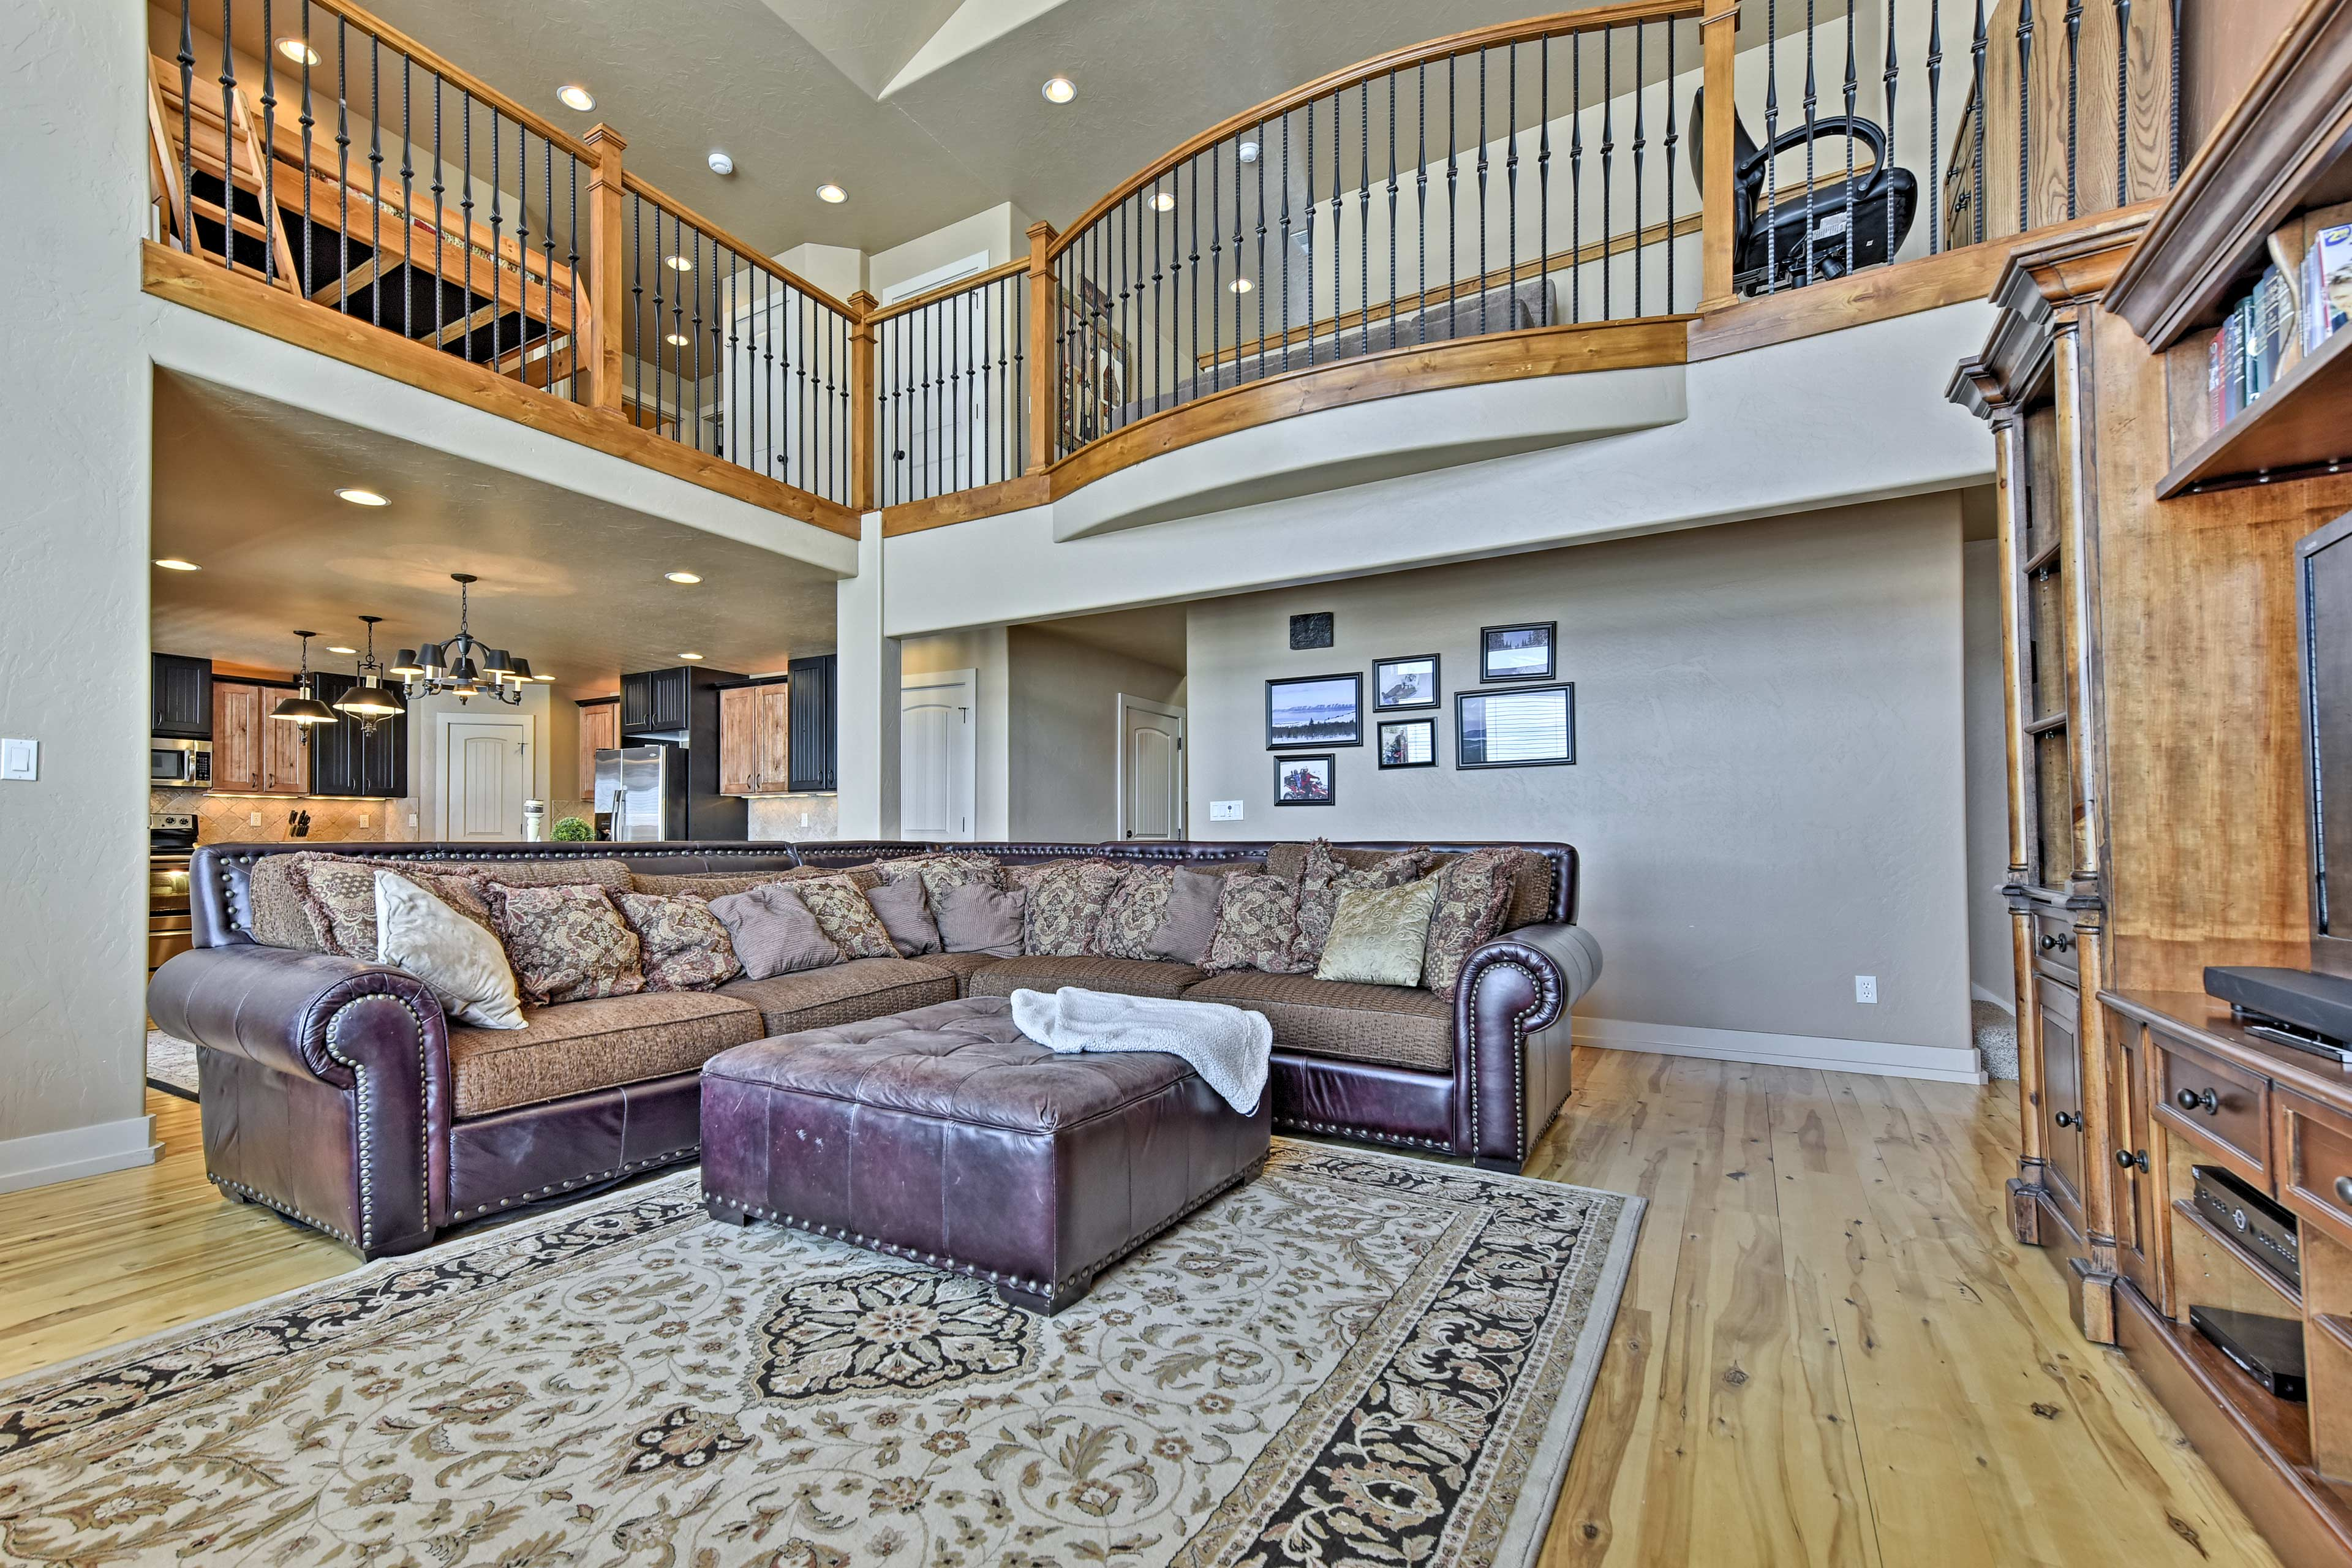 This spacious vacation rental has 7 bedrooms and 4 bathrooms.